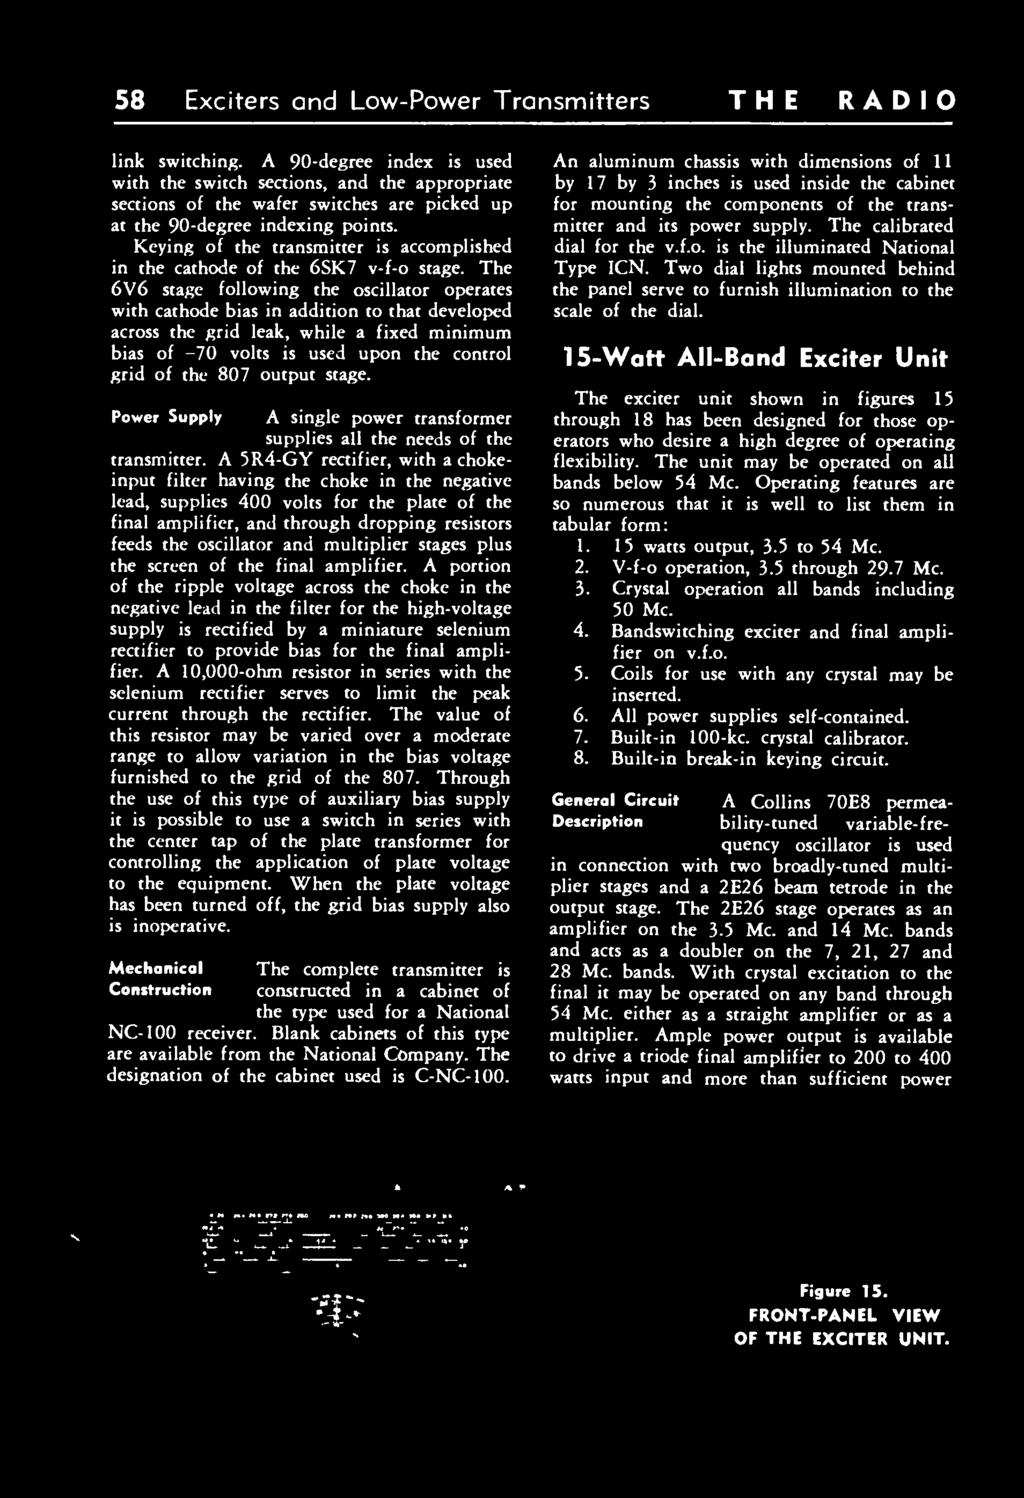 Radio Acia Twelfth Edition 1 4 J Pdf Boosting The Output Power Of Low Fm Broadcast Band Exciters Is Keying Transmitter Accomplished In Cathode 6sk7 V F 59 58 And Transmitters Link